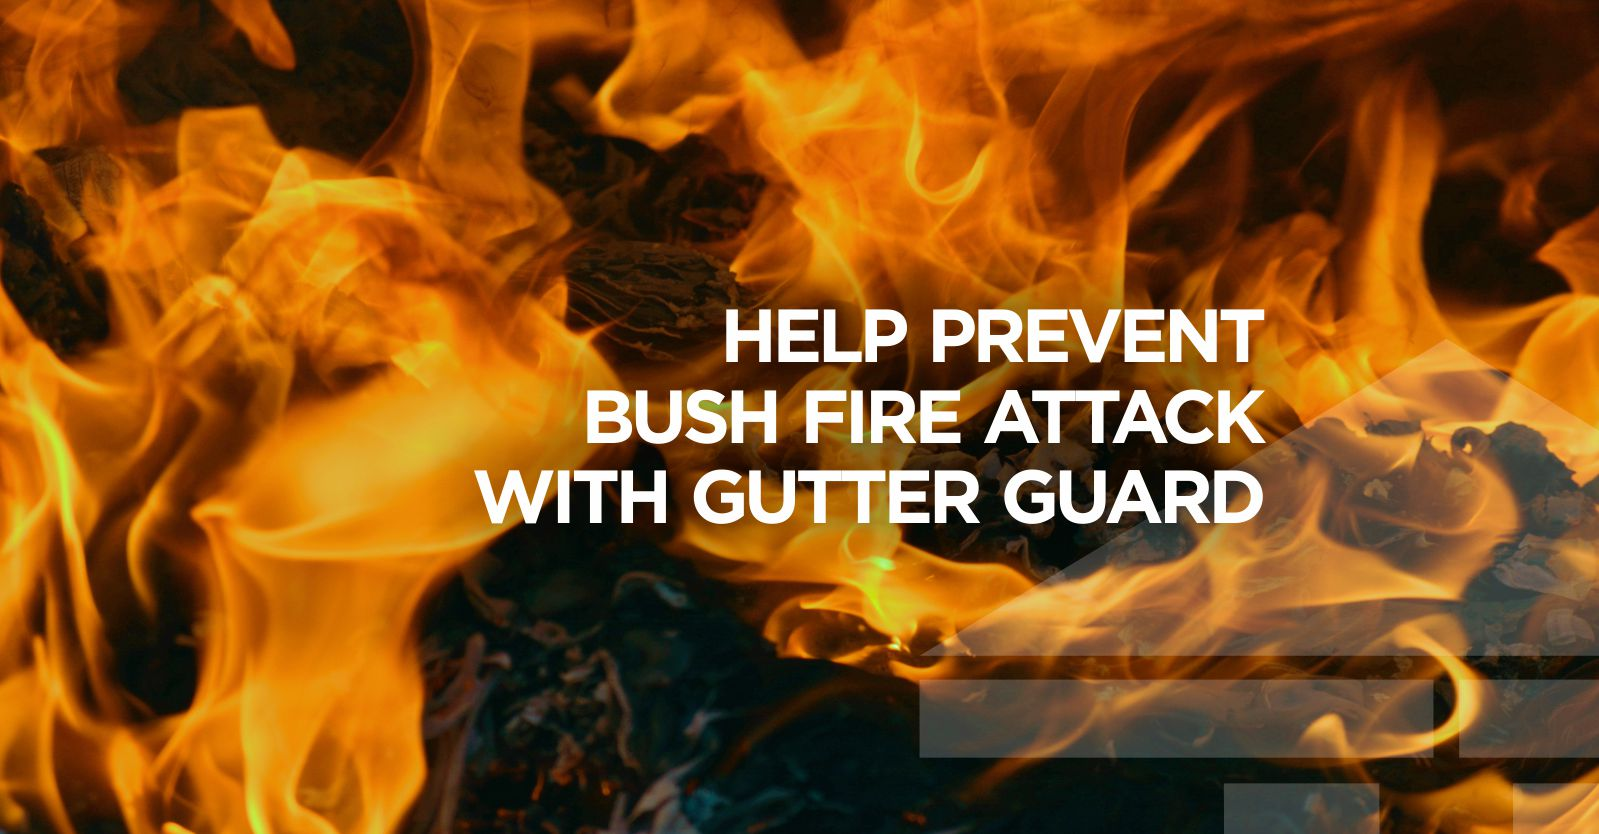 Gutter Guard Installed with Central Coast Gutter Cleaning helps prevent bushfire